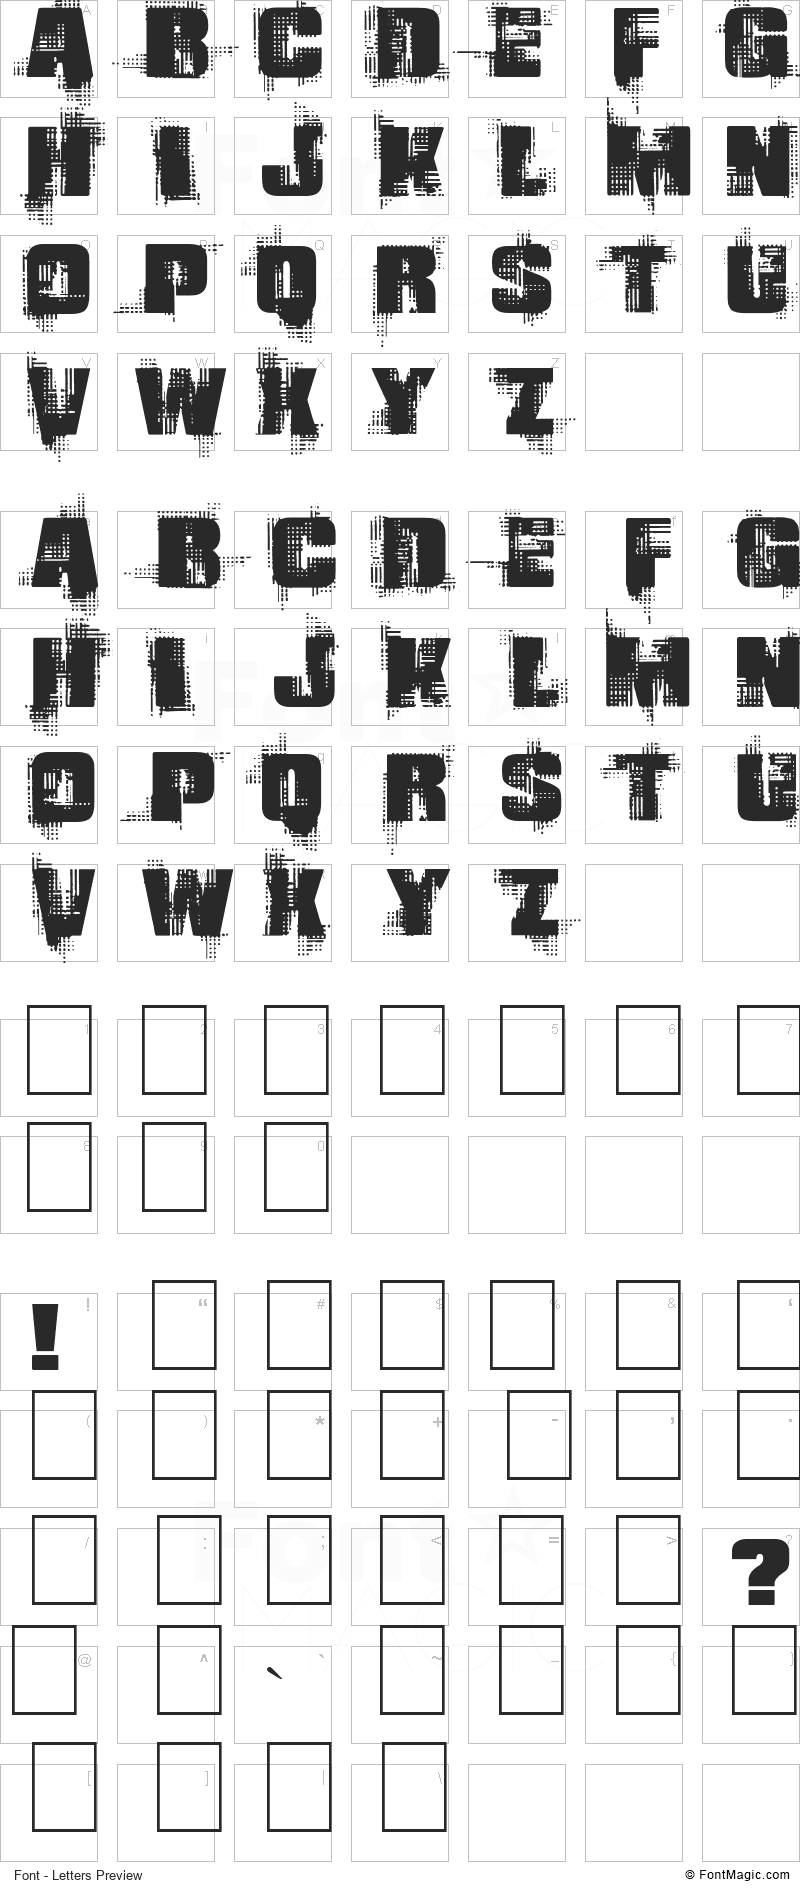 Gling Font - All Latters Preview Chart